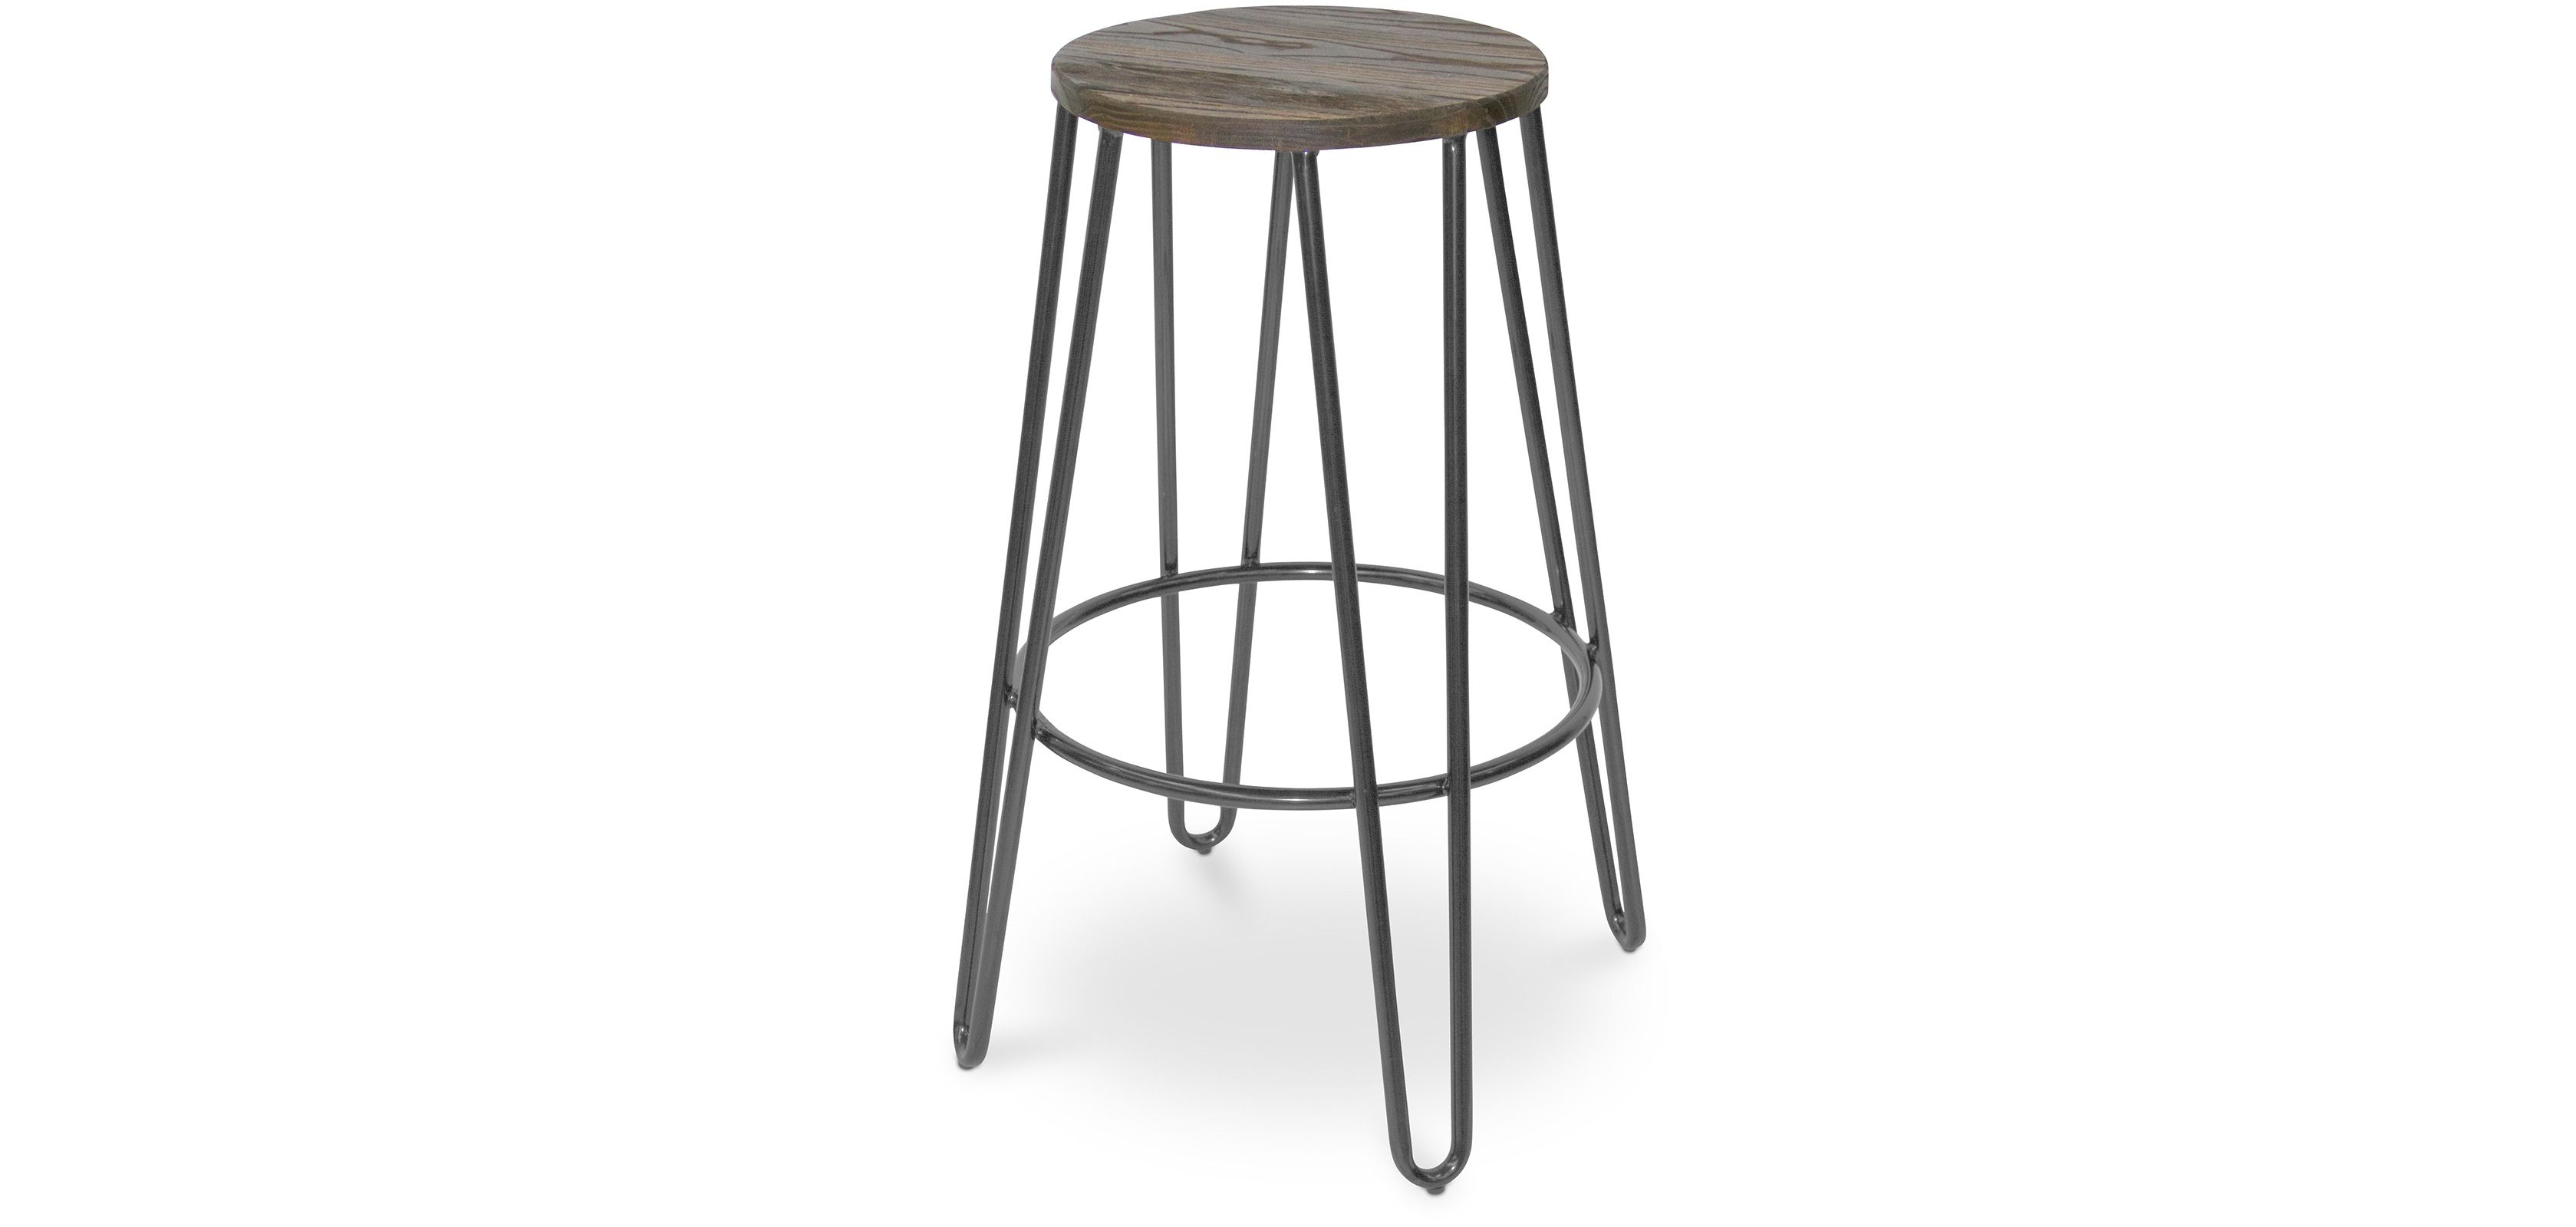 39a8928c9db9bcd098702f09be5f475c Impressionnant De Tabouret De Bar Retro